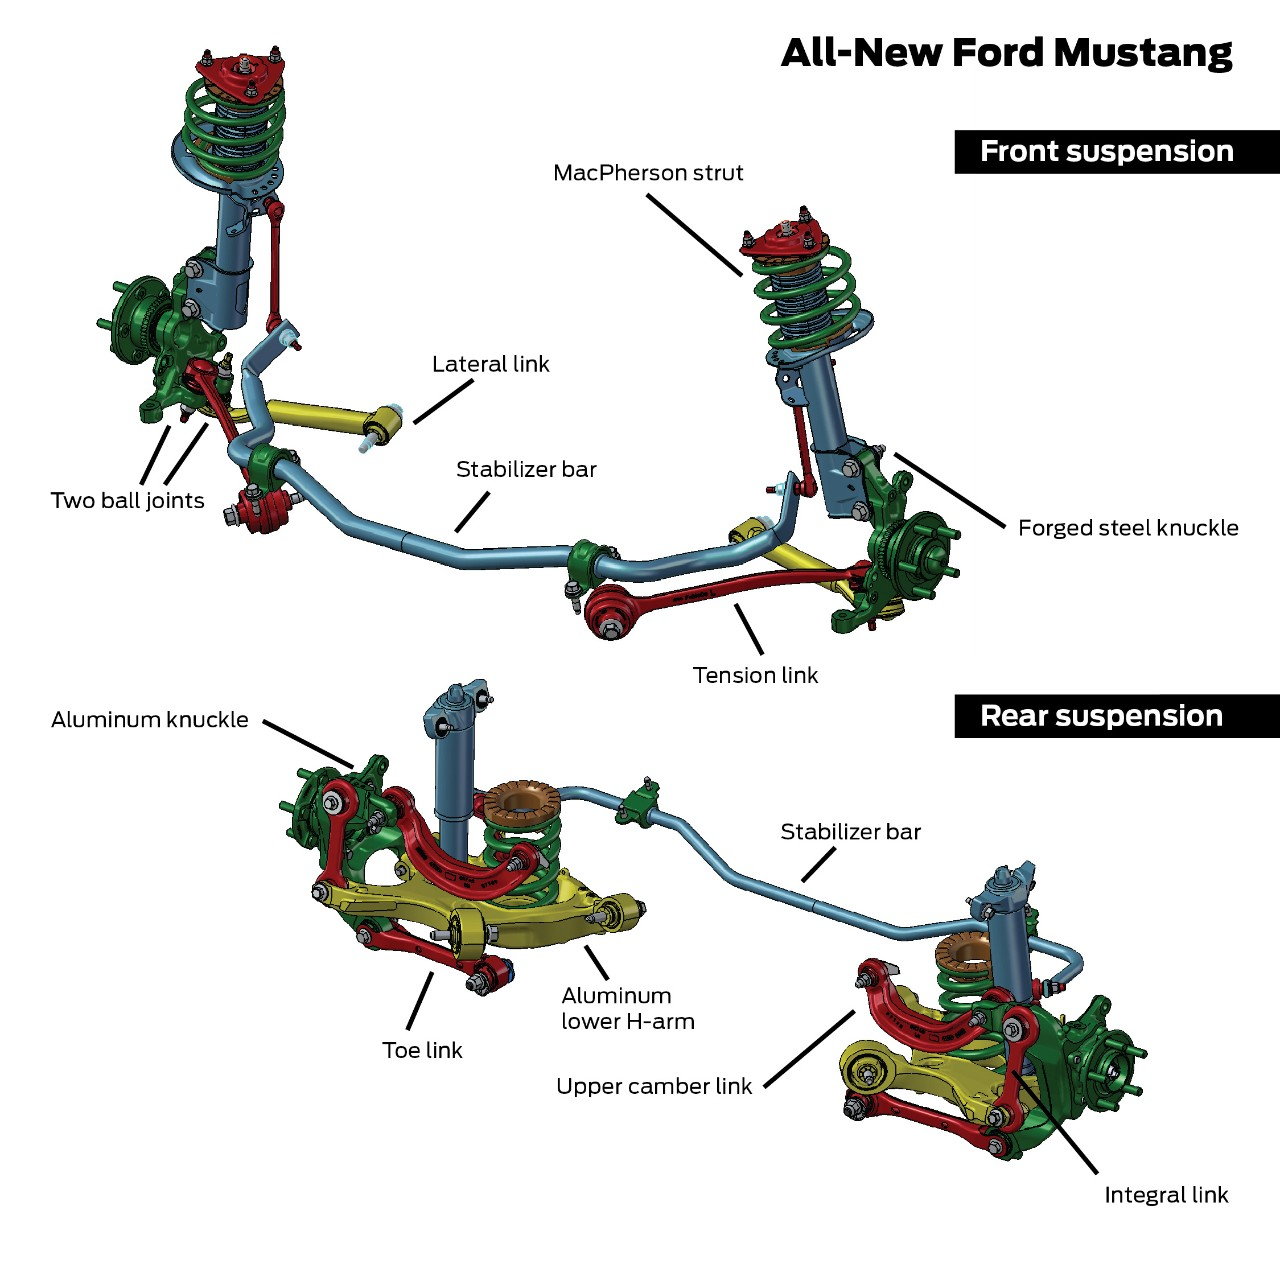 2015 Mustang Specs & Information: S550 Models, Engines, Colors & More - 2015 Mustang Suspension